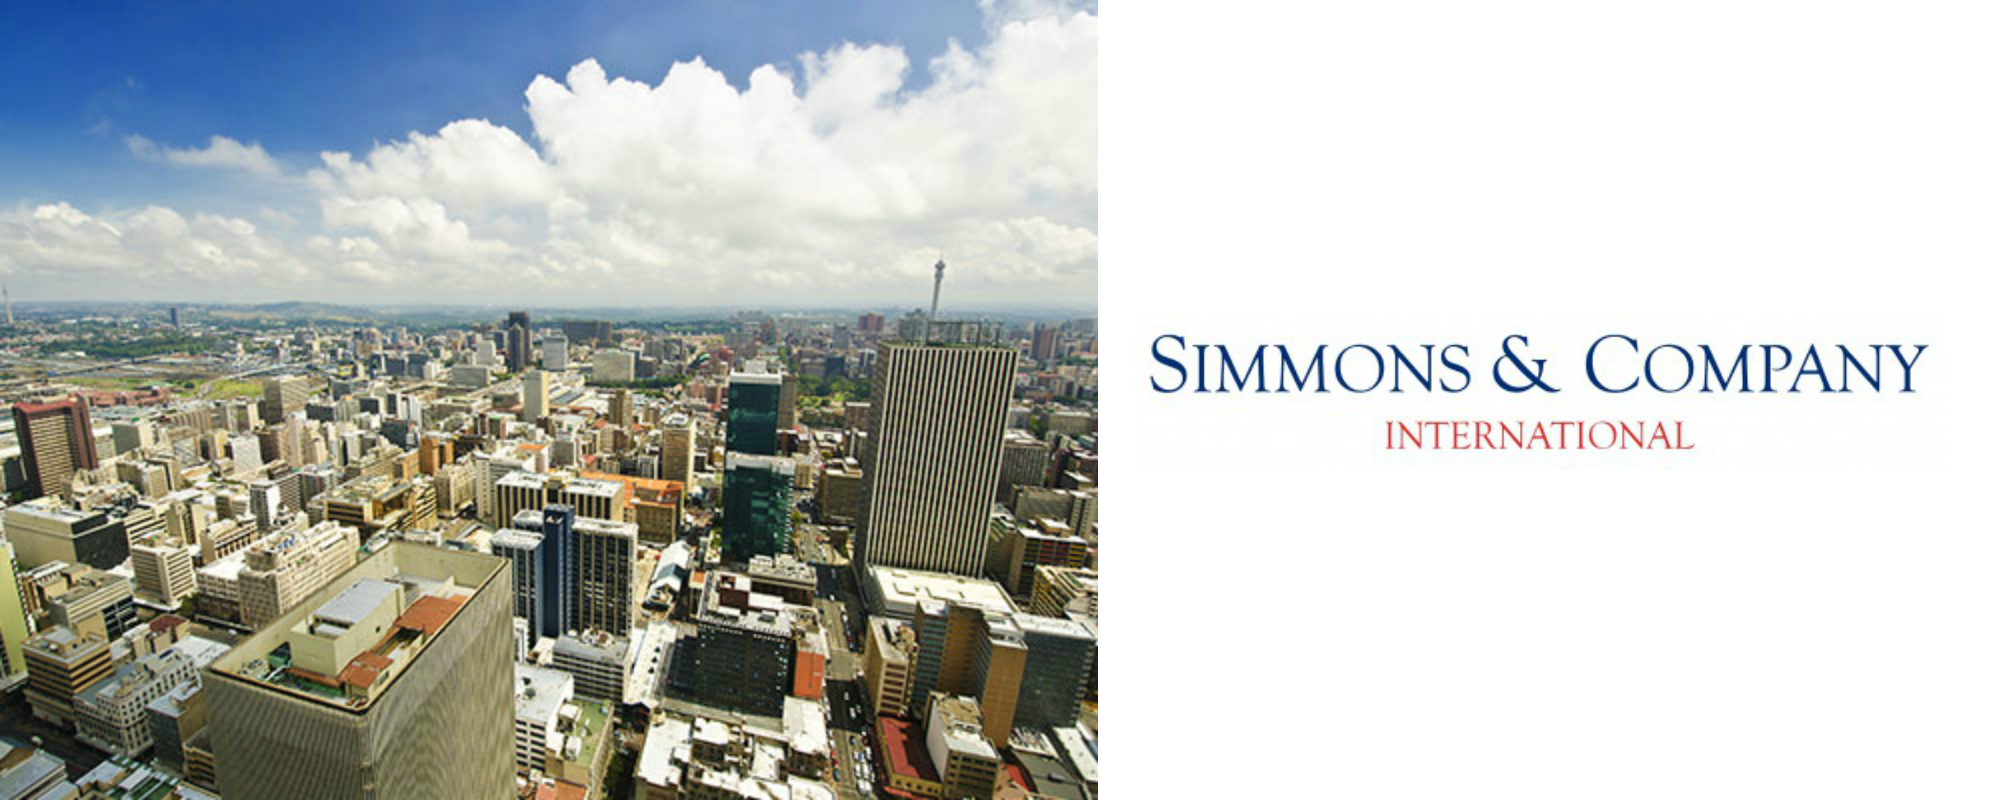 Simmons & Company Banner Most Powerful M&A Firms in the world best upslide